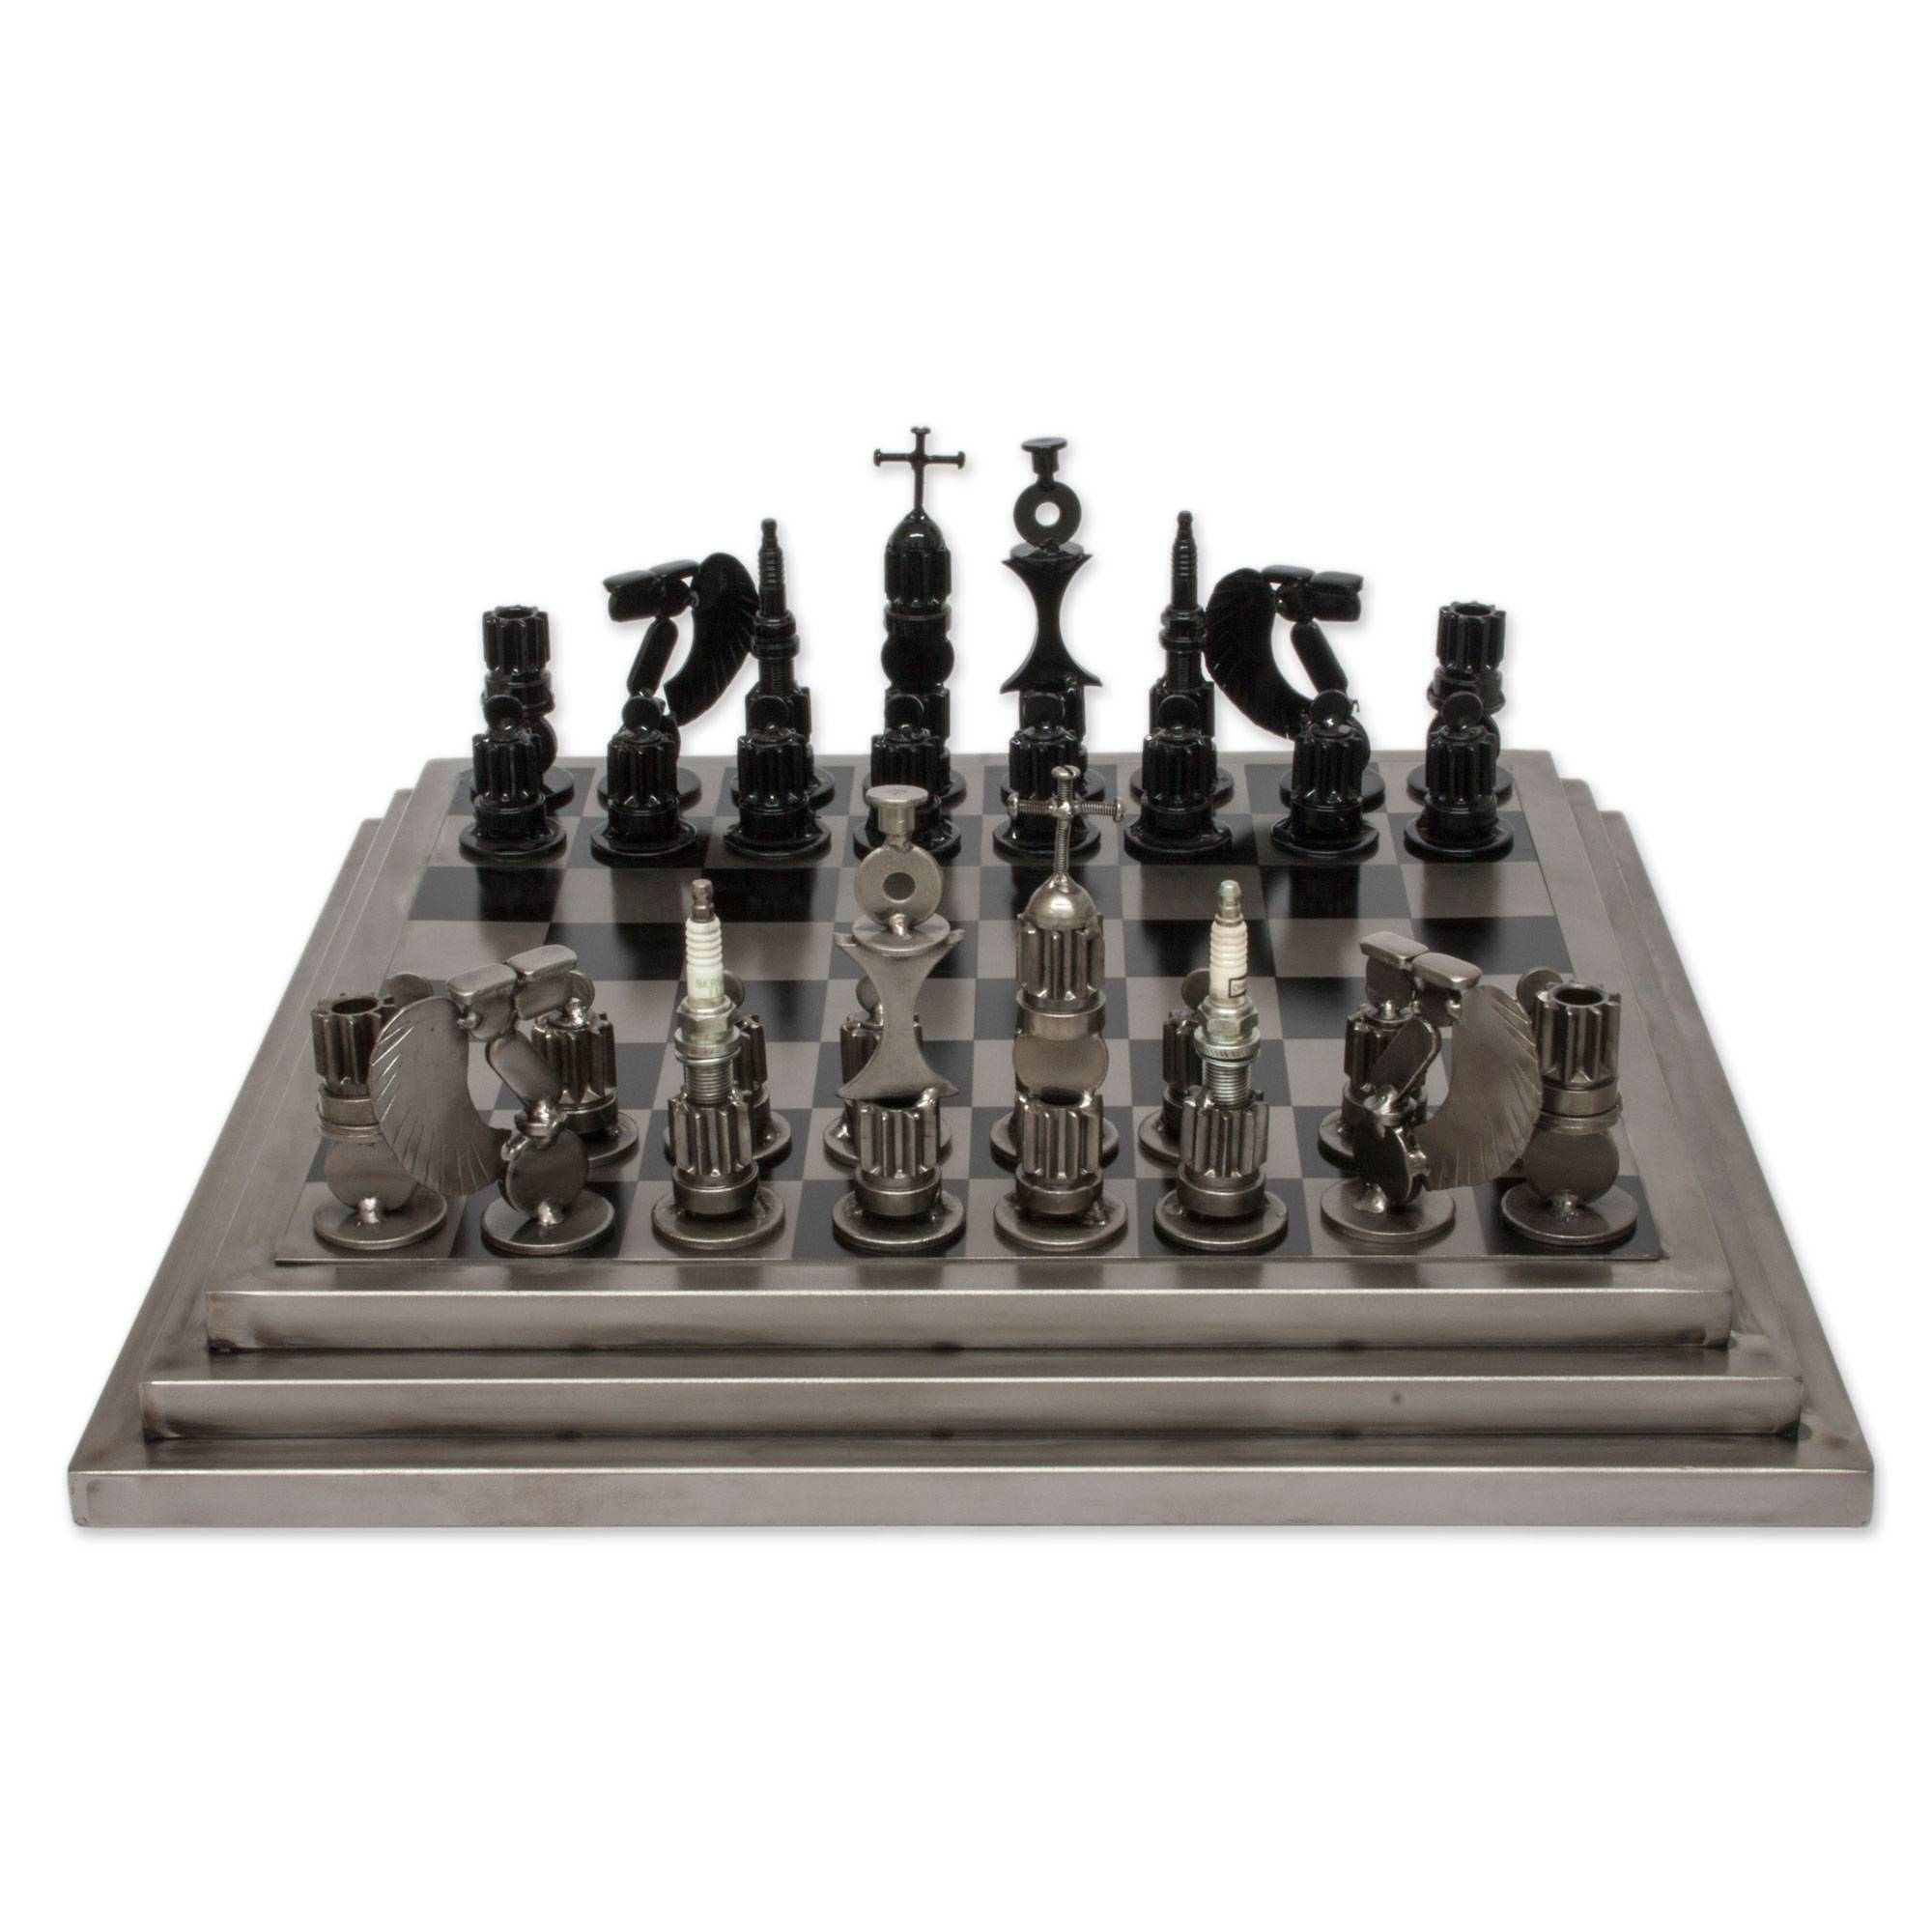 Modern Chess Table Chess Sets & Games  Handcrafted Chess Sets At Novica